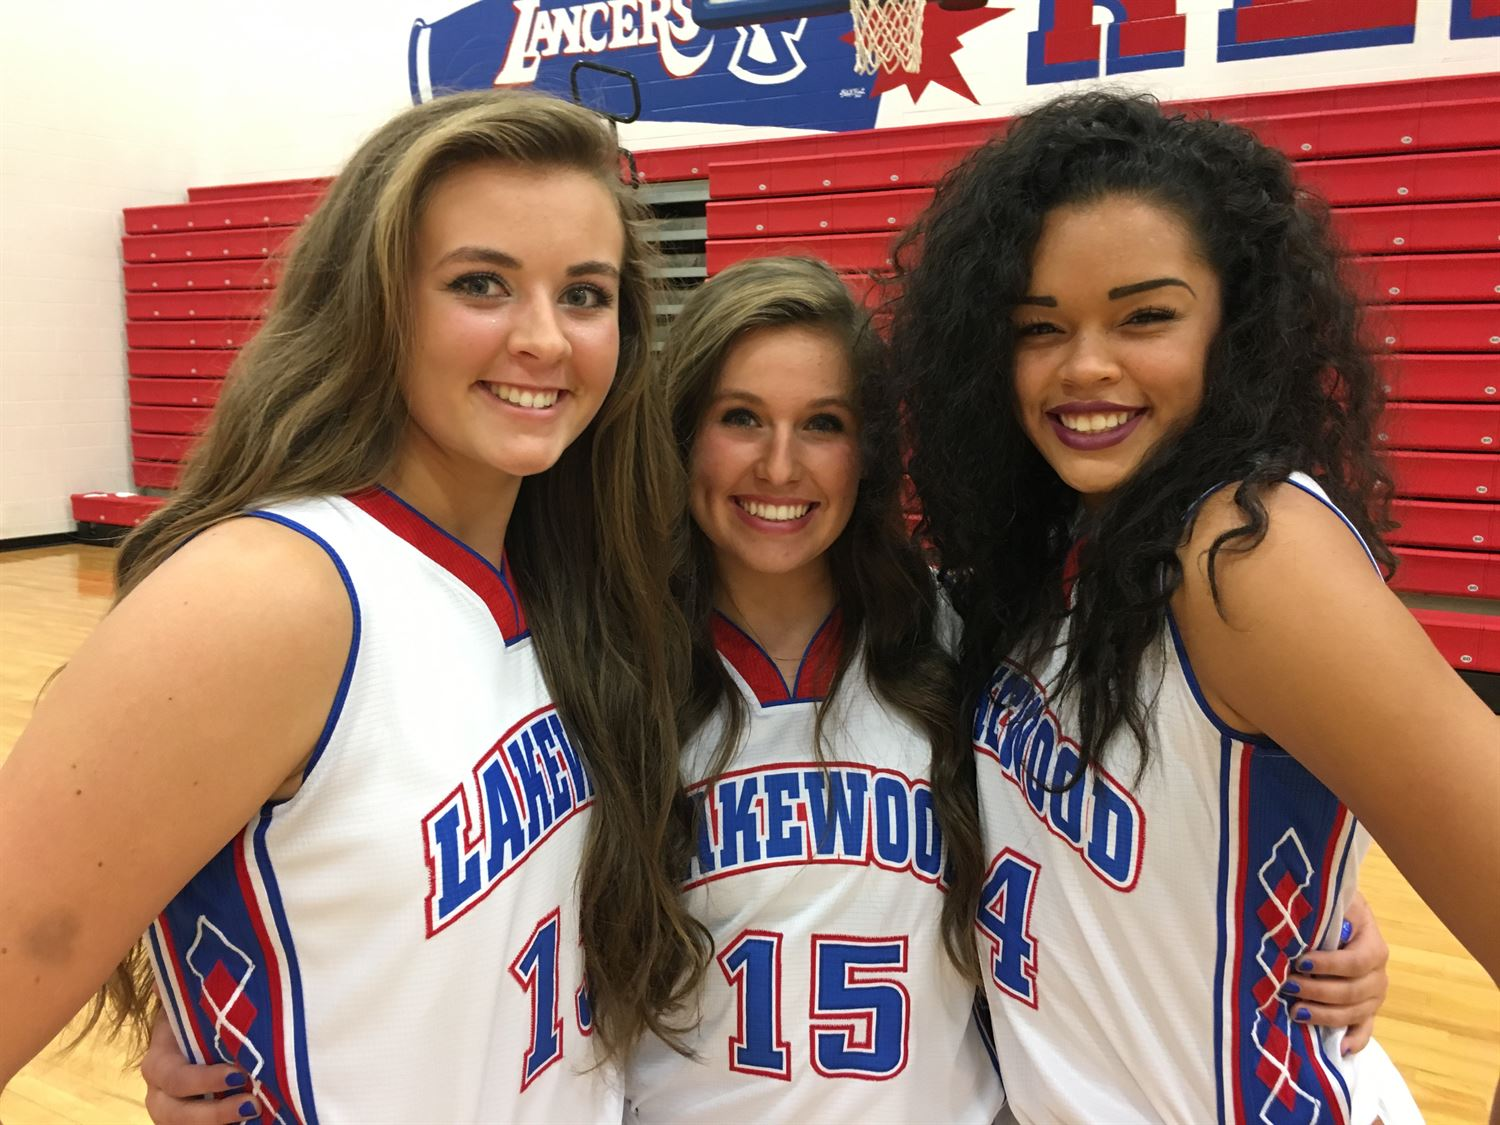 Lakewood High School - Varsity Girls Basketball